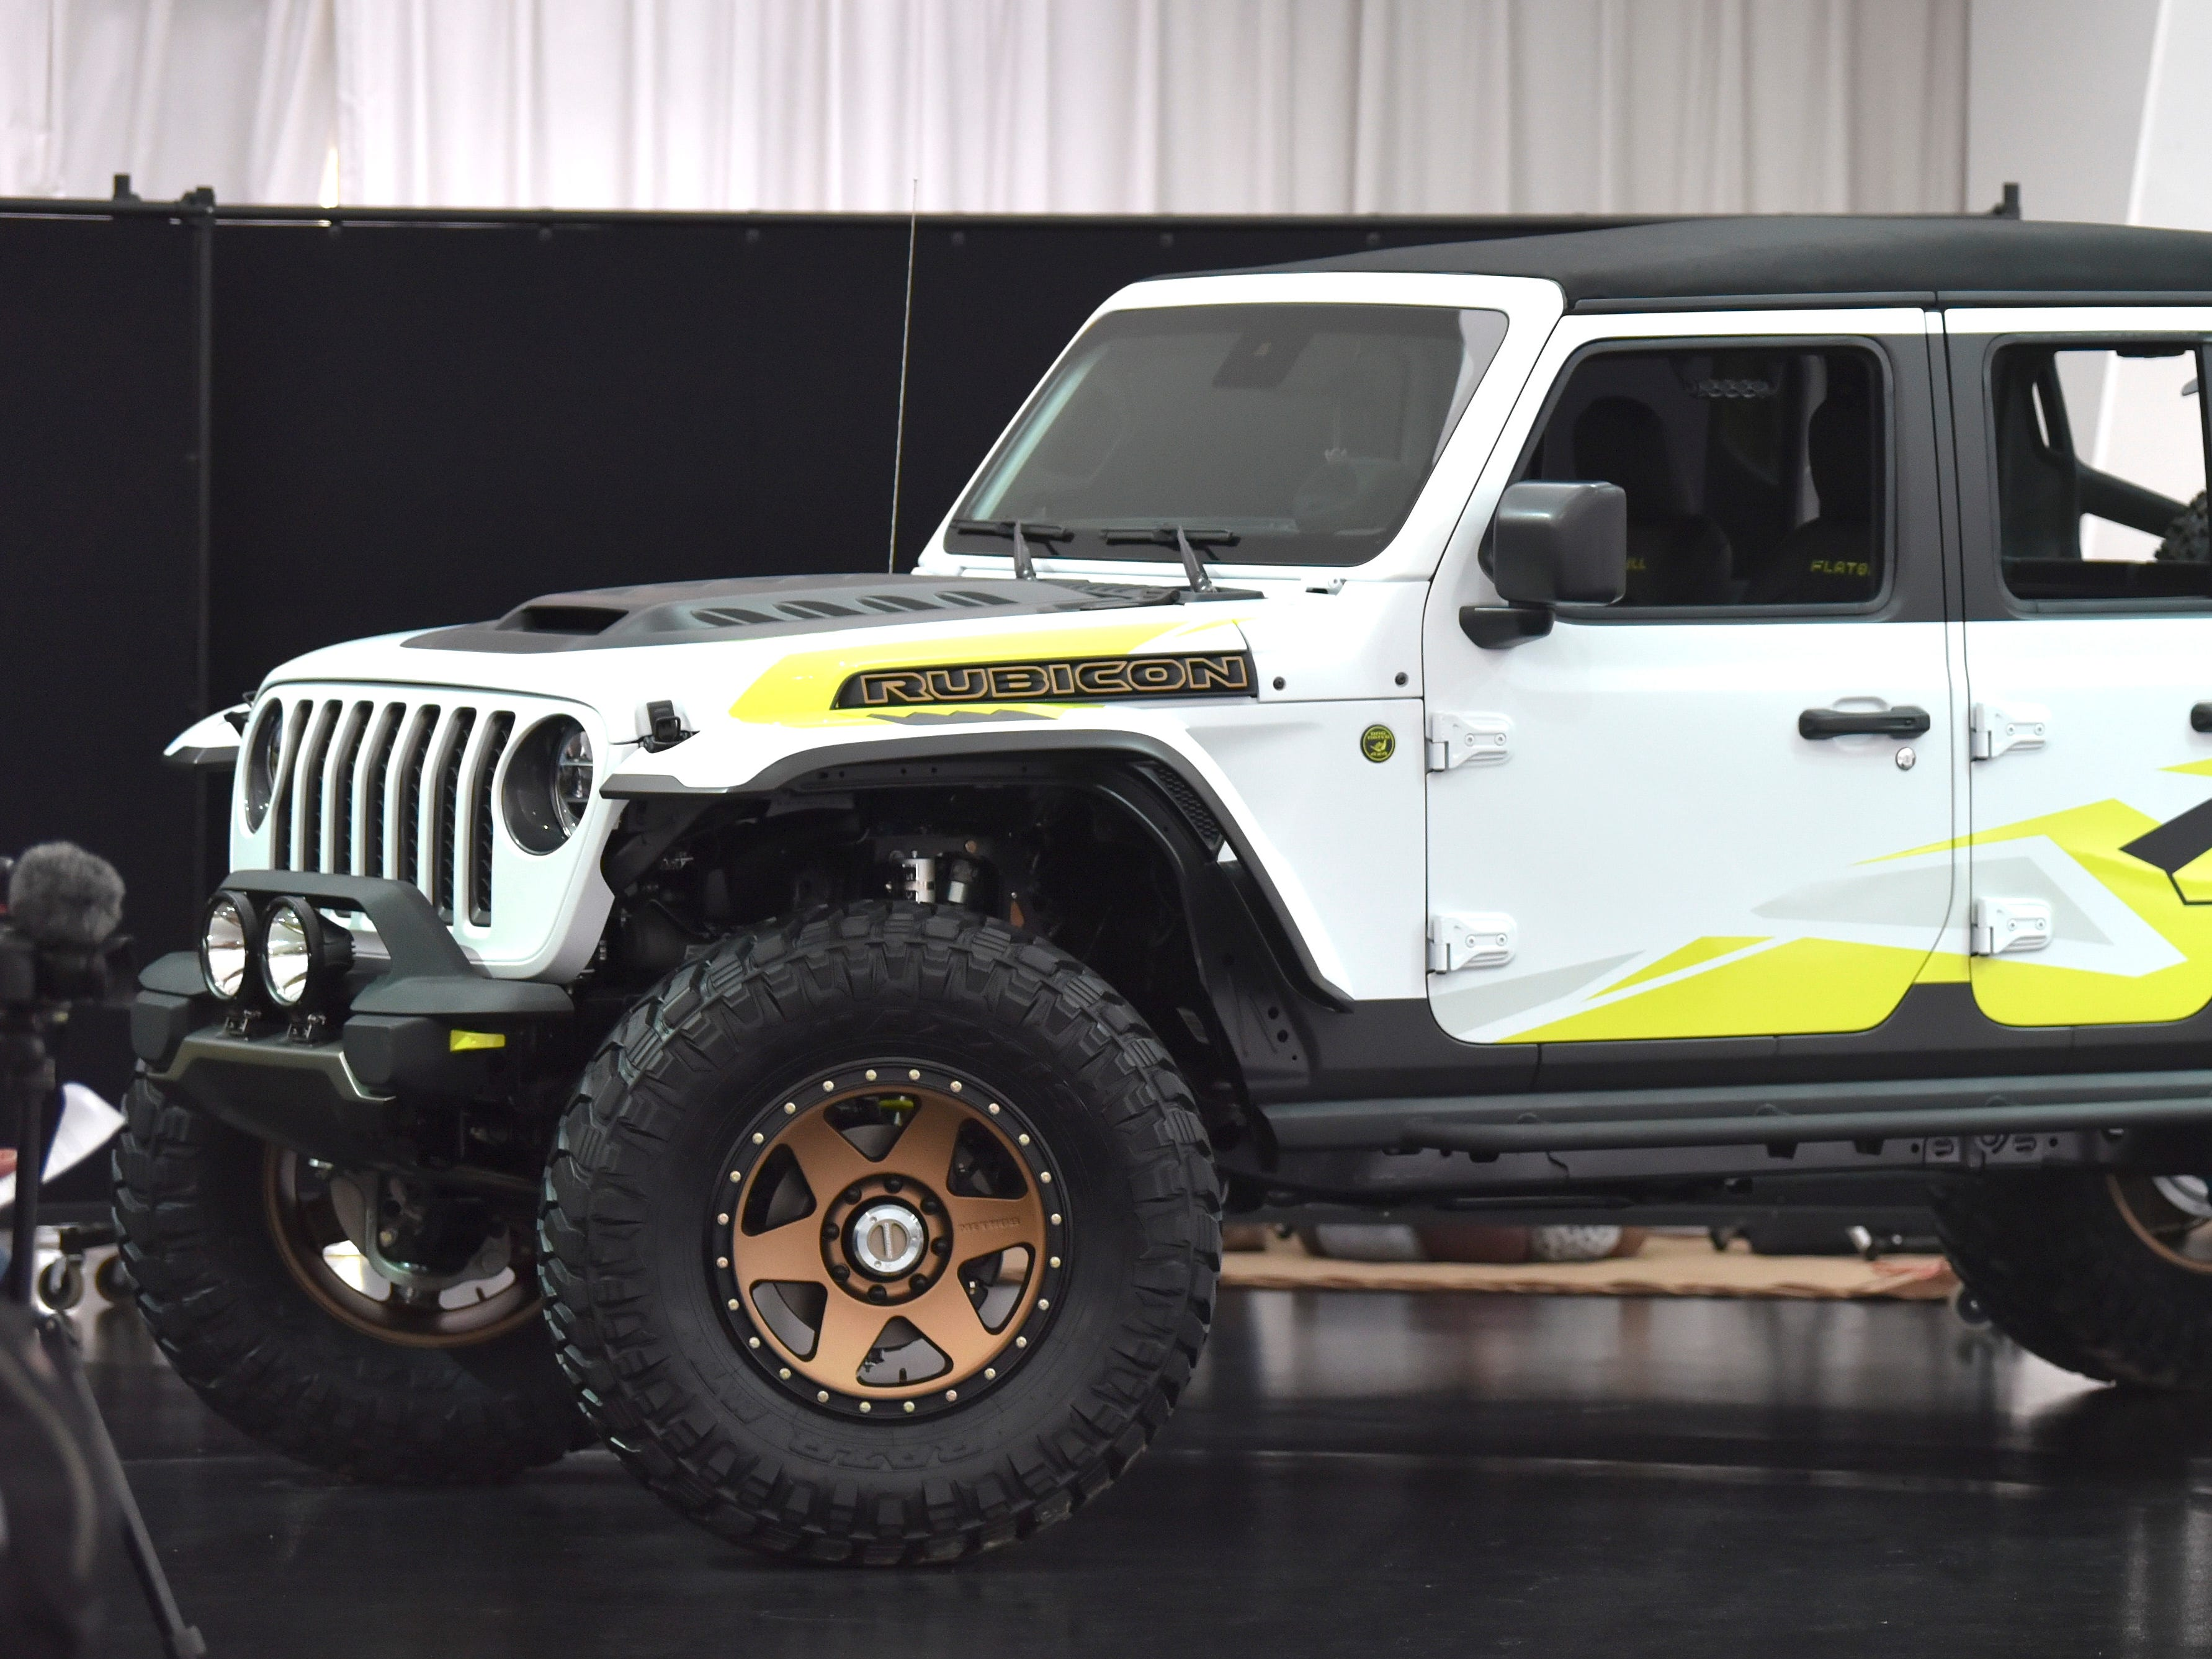 This is the Jeep Flatbill.